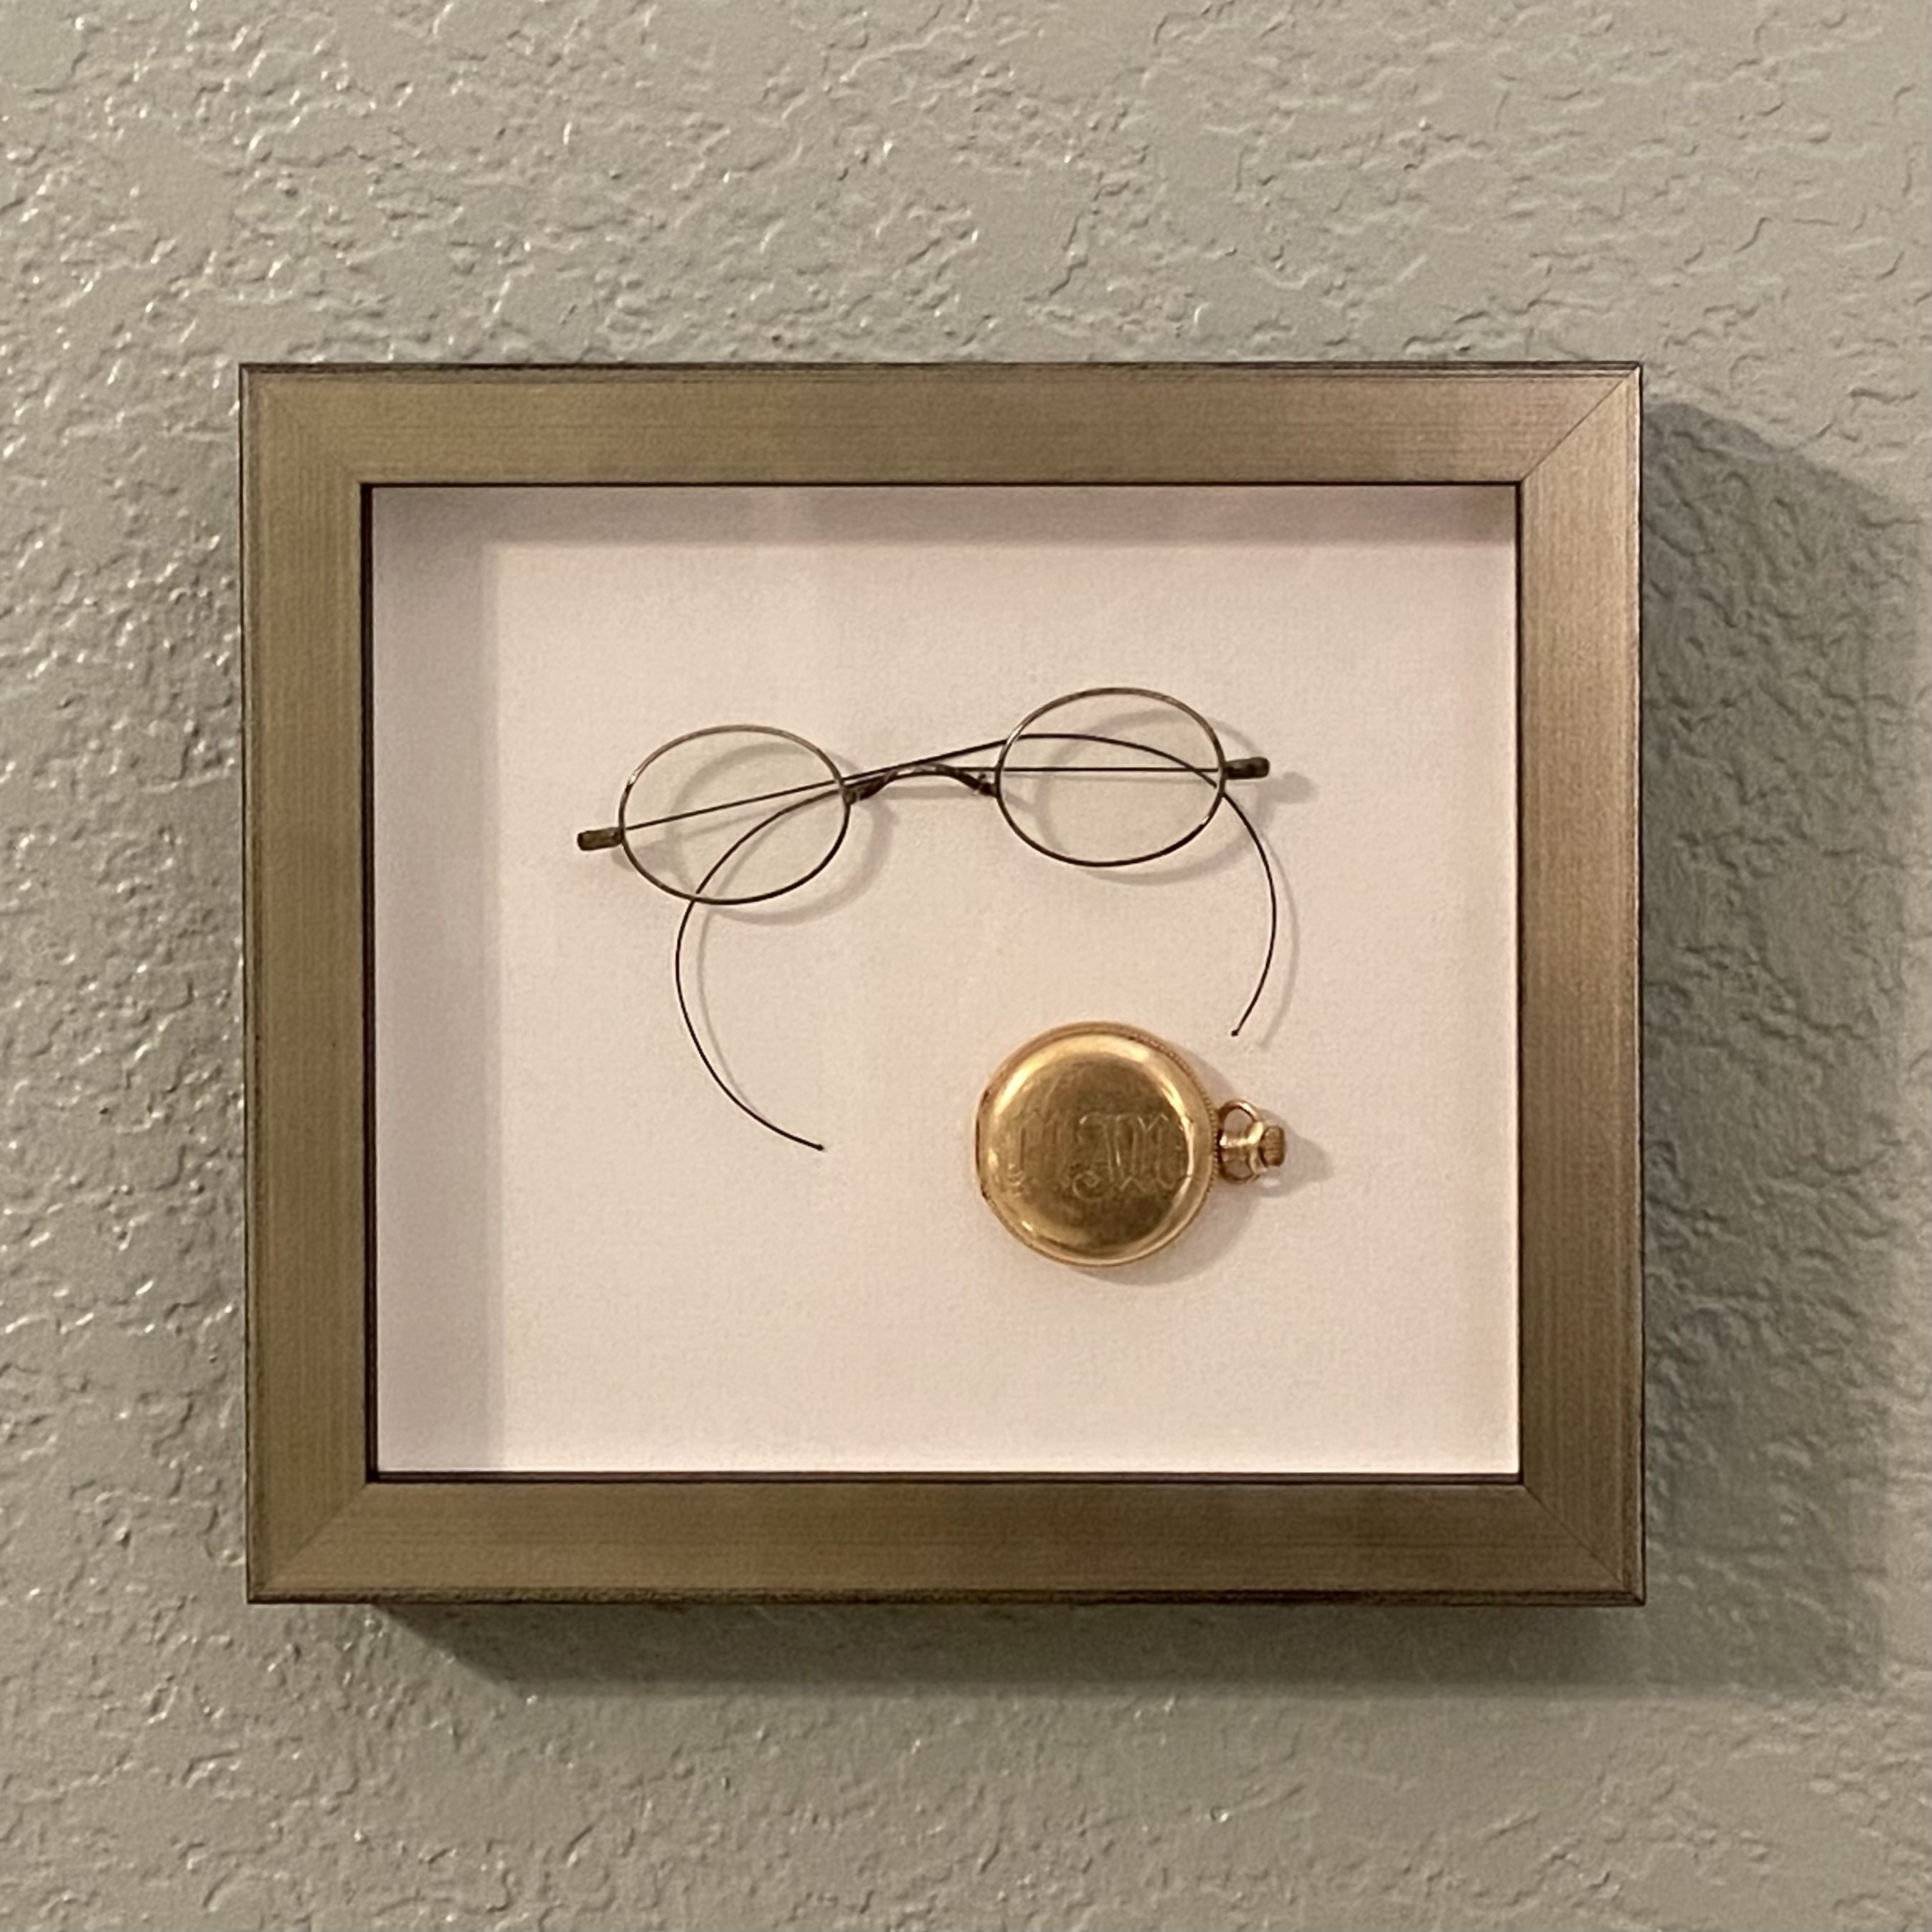 framed glasses and pocketwatch